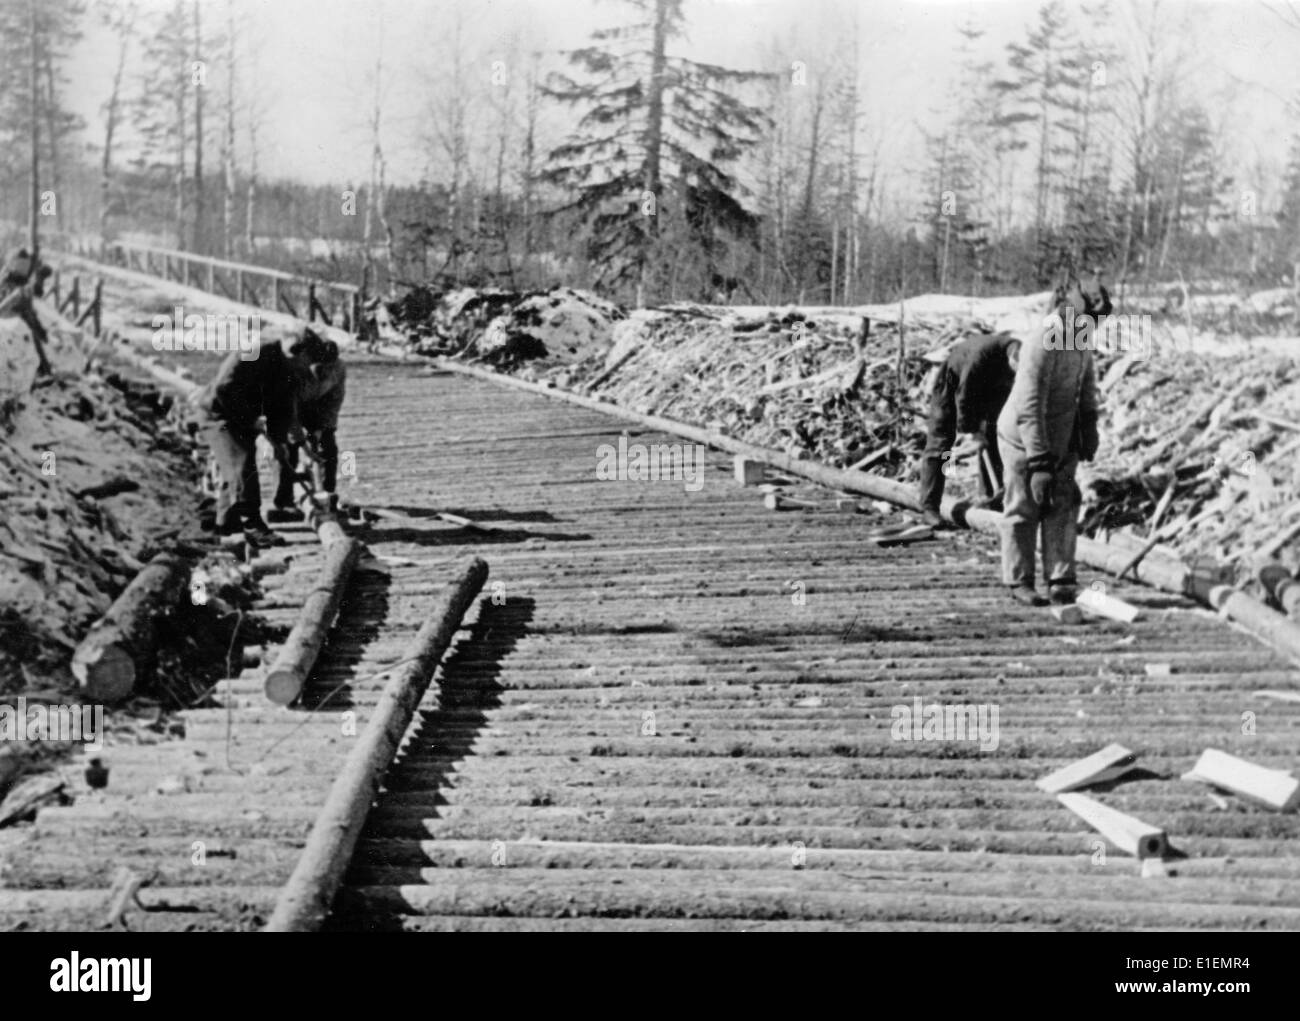 Propaganda text! from Nazi news reporting on the back of the picture: 'Corduroy roads over muddy roads. In the first Stock Photo